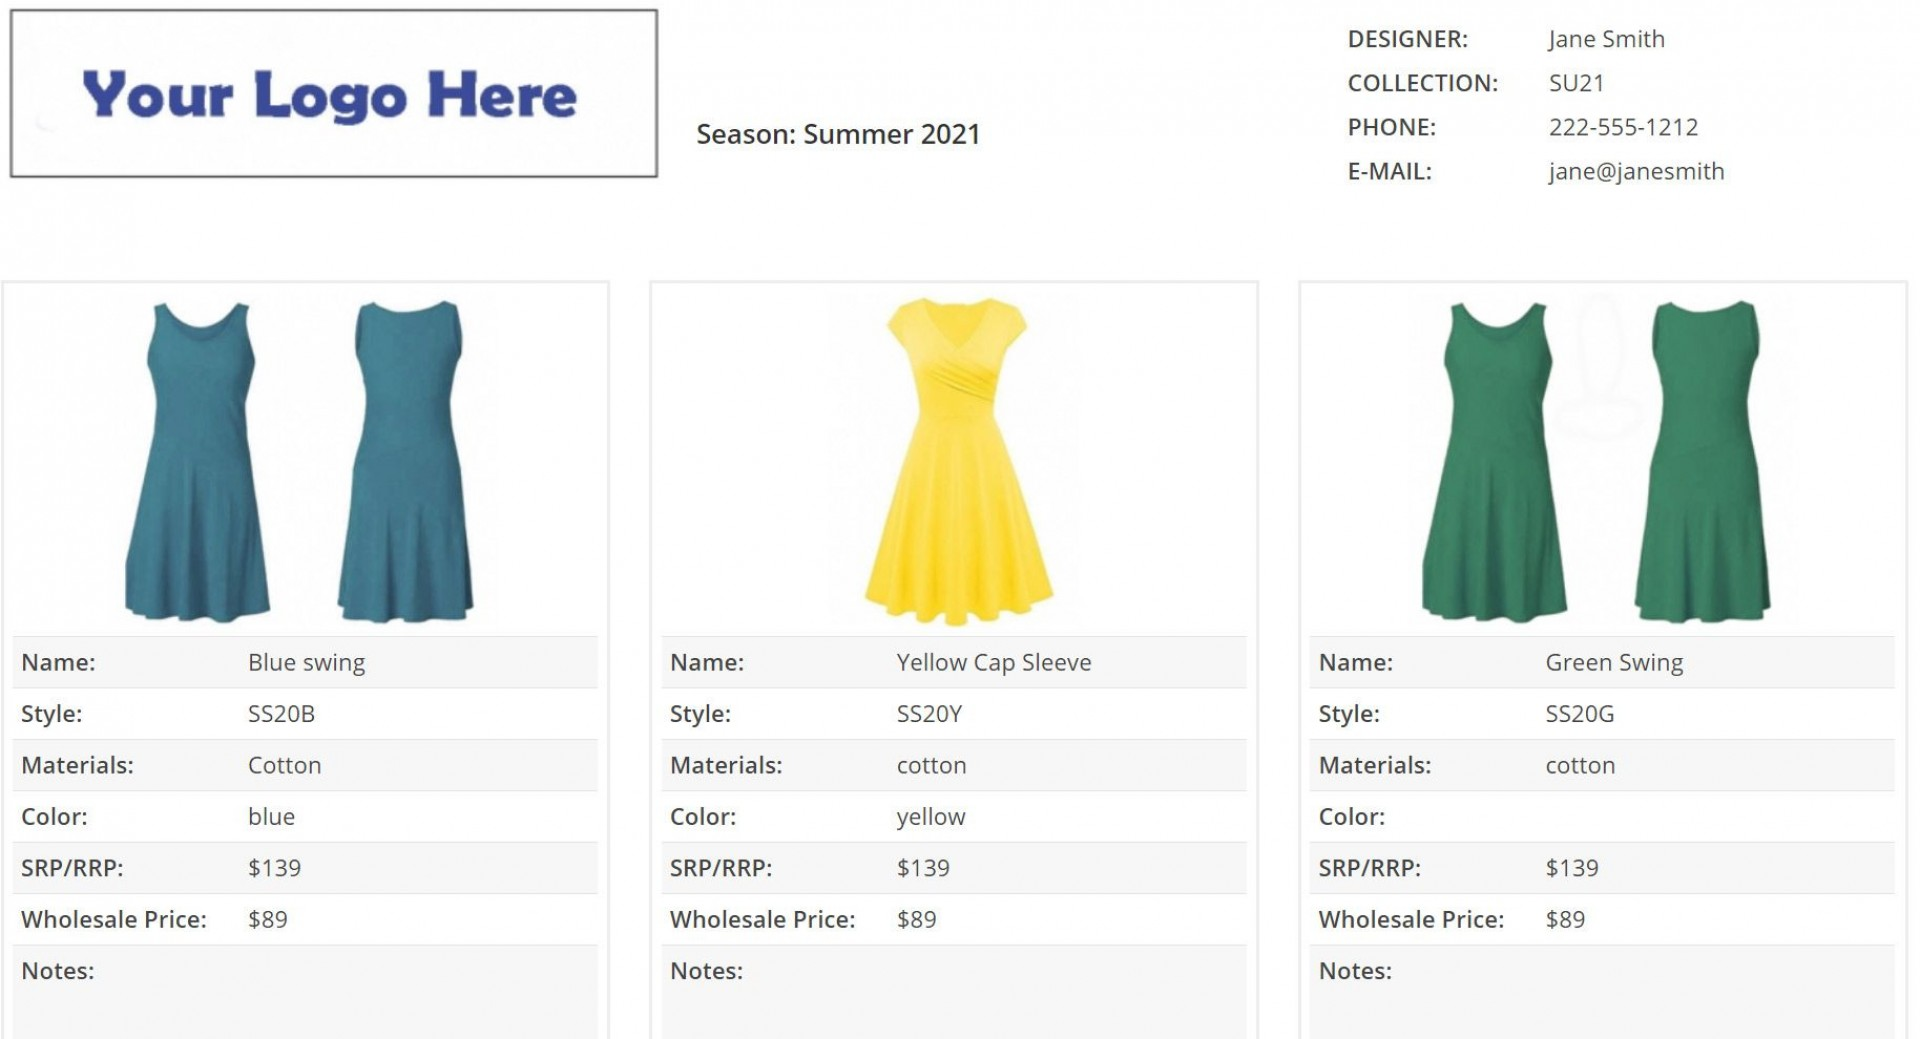 005 Archaicawful Wholesale Line Sheet Template Example  Fashion Free Excel1920